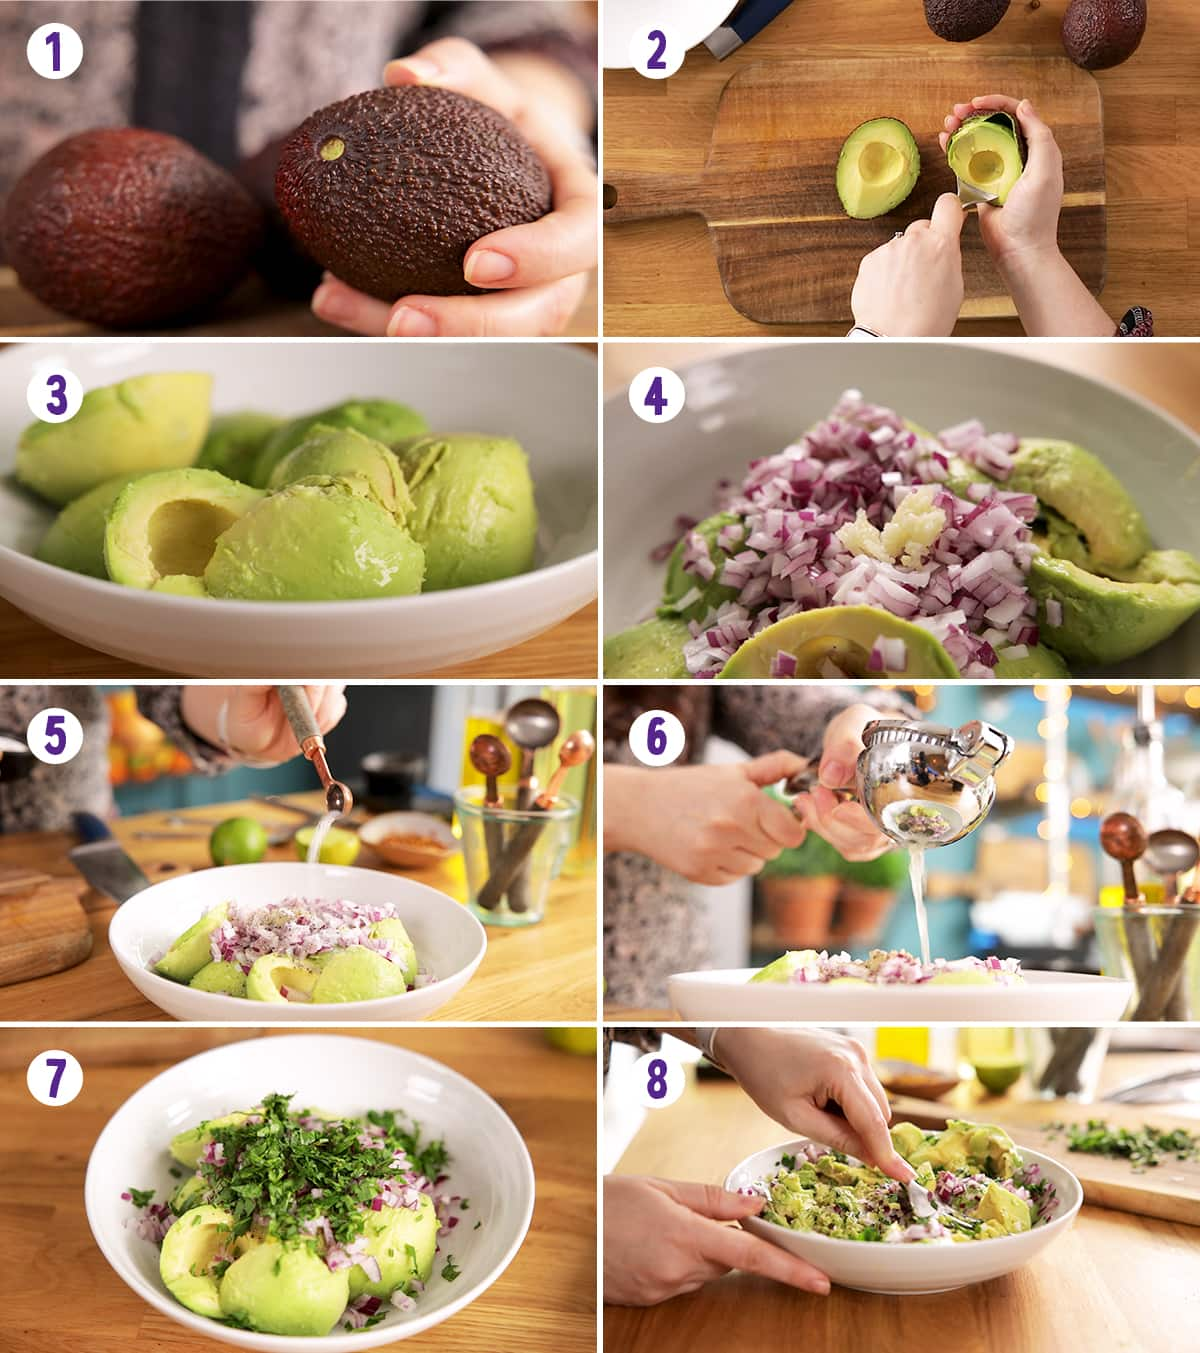 8 image collage showing the steps to make guacamole.